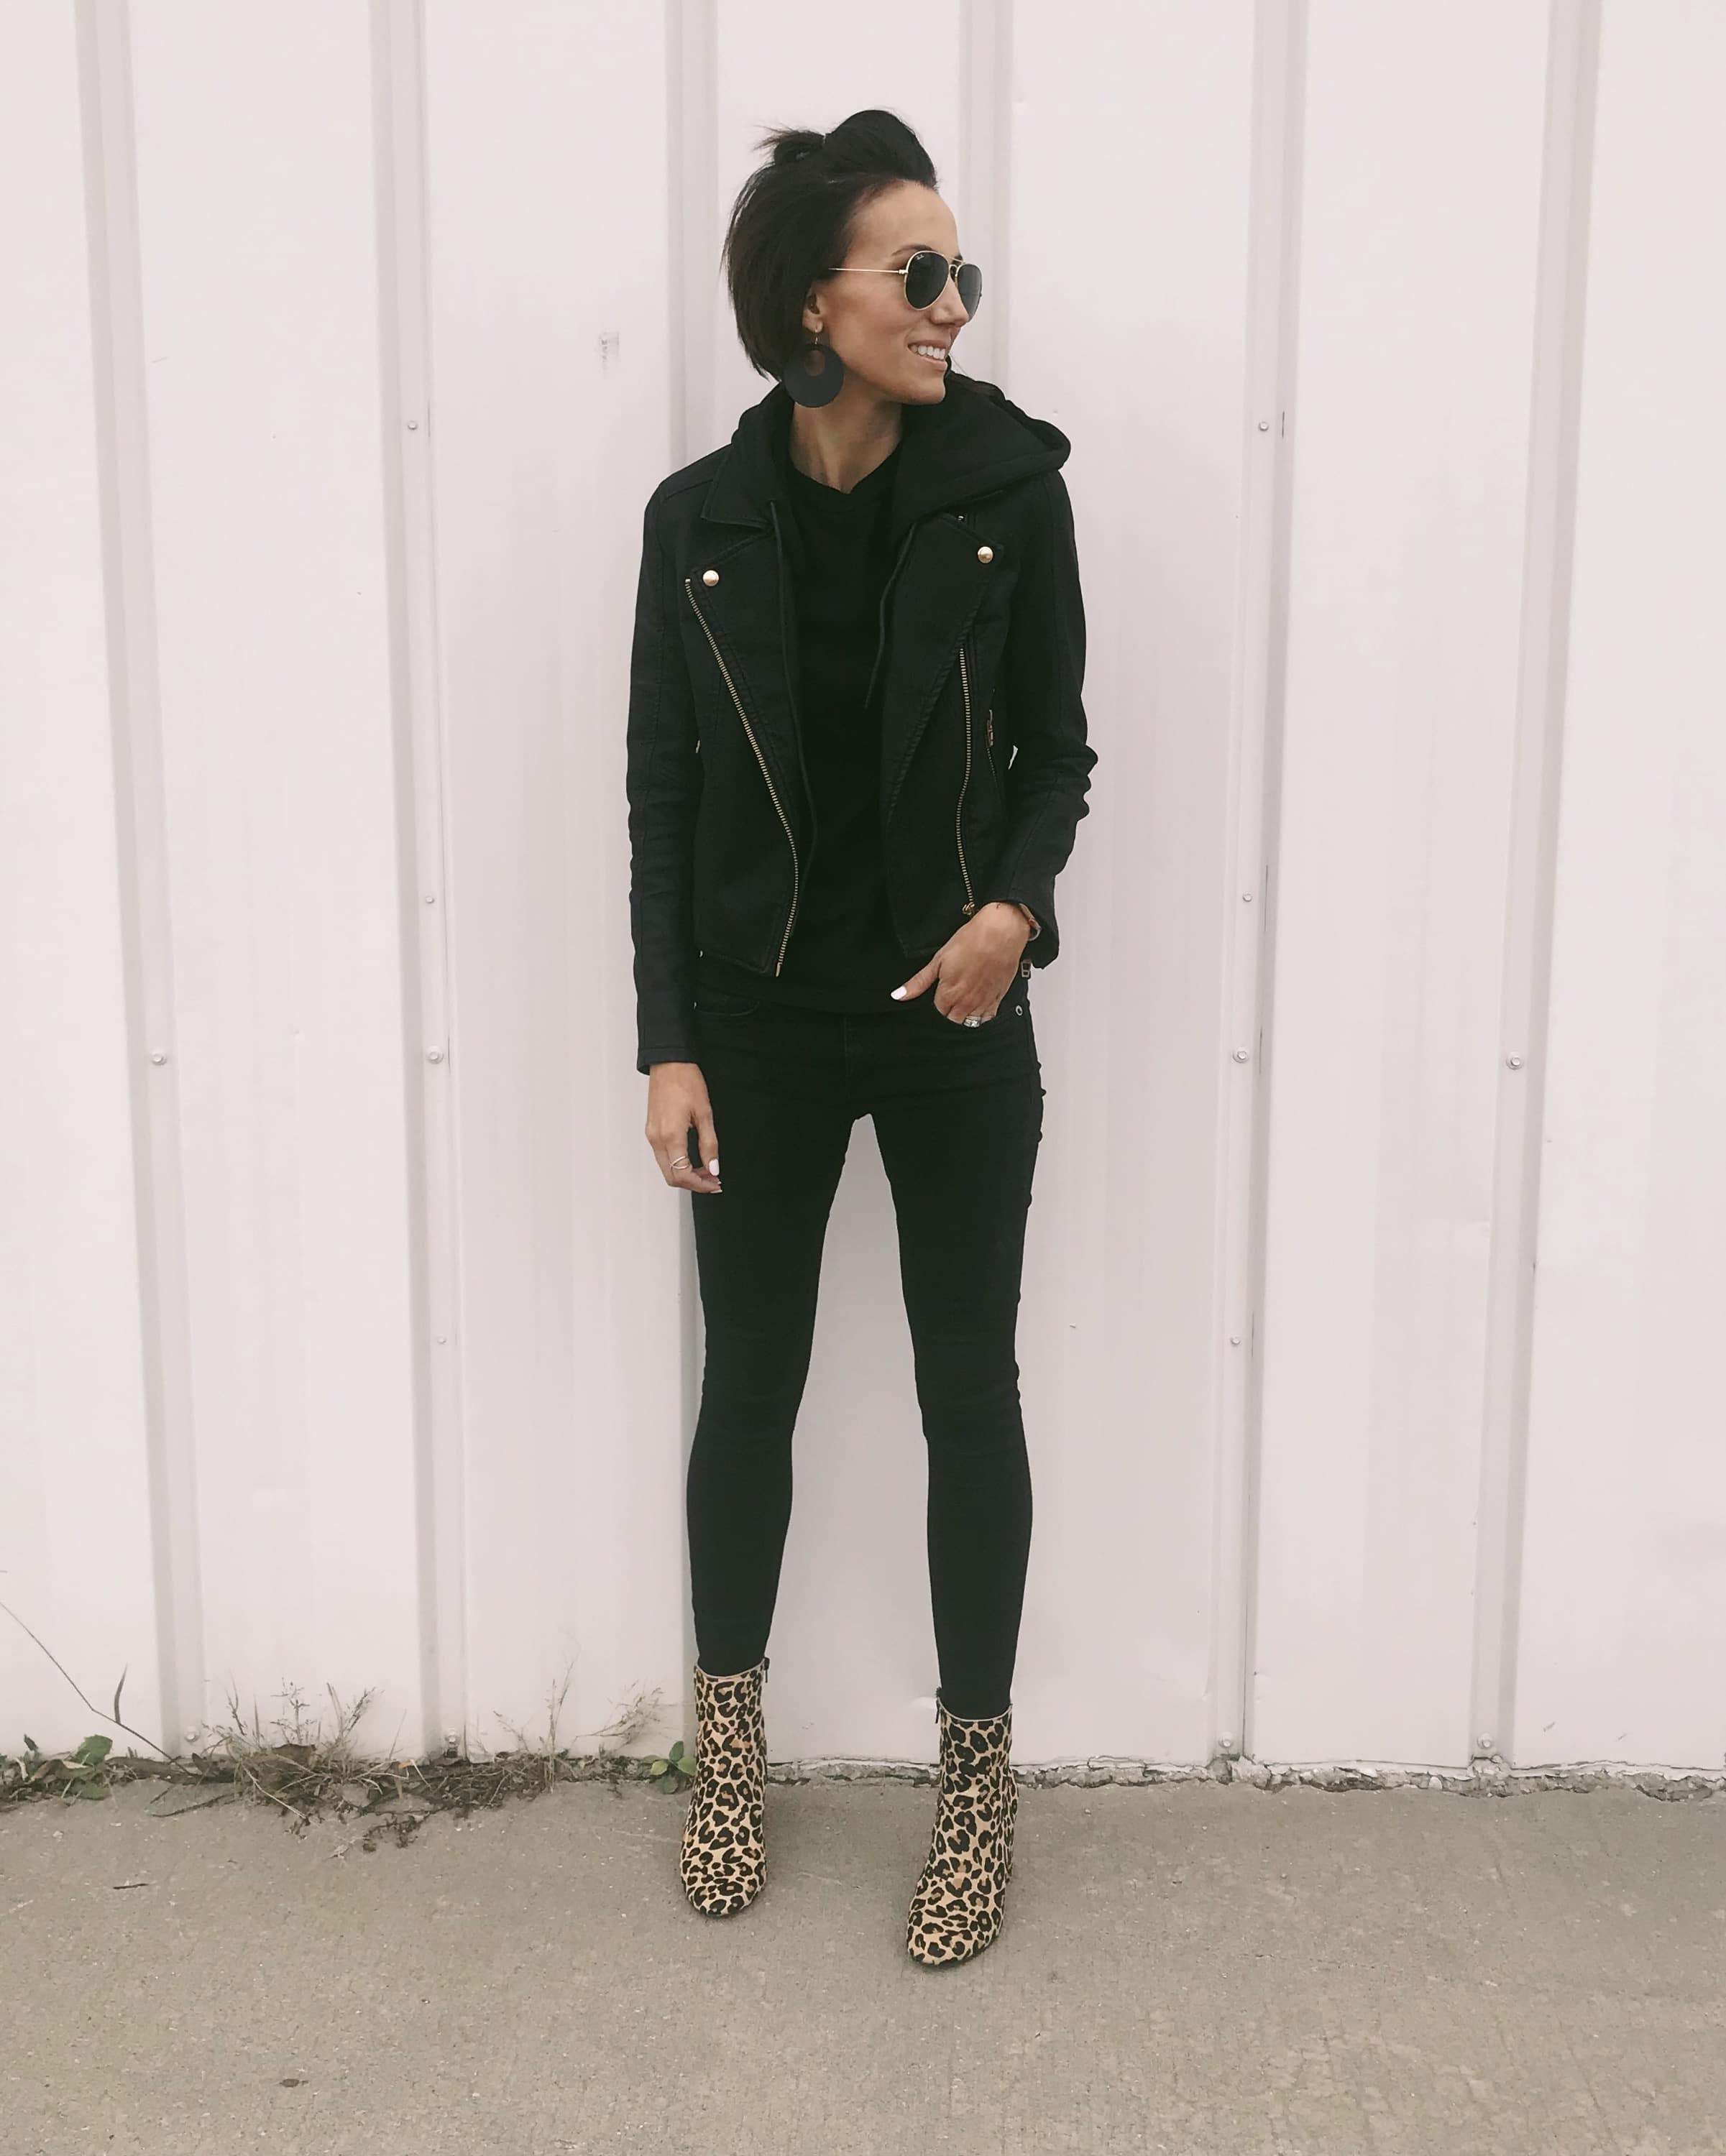 Black Moto Jacket + Black Jeans + Leopard Booties